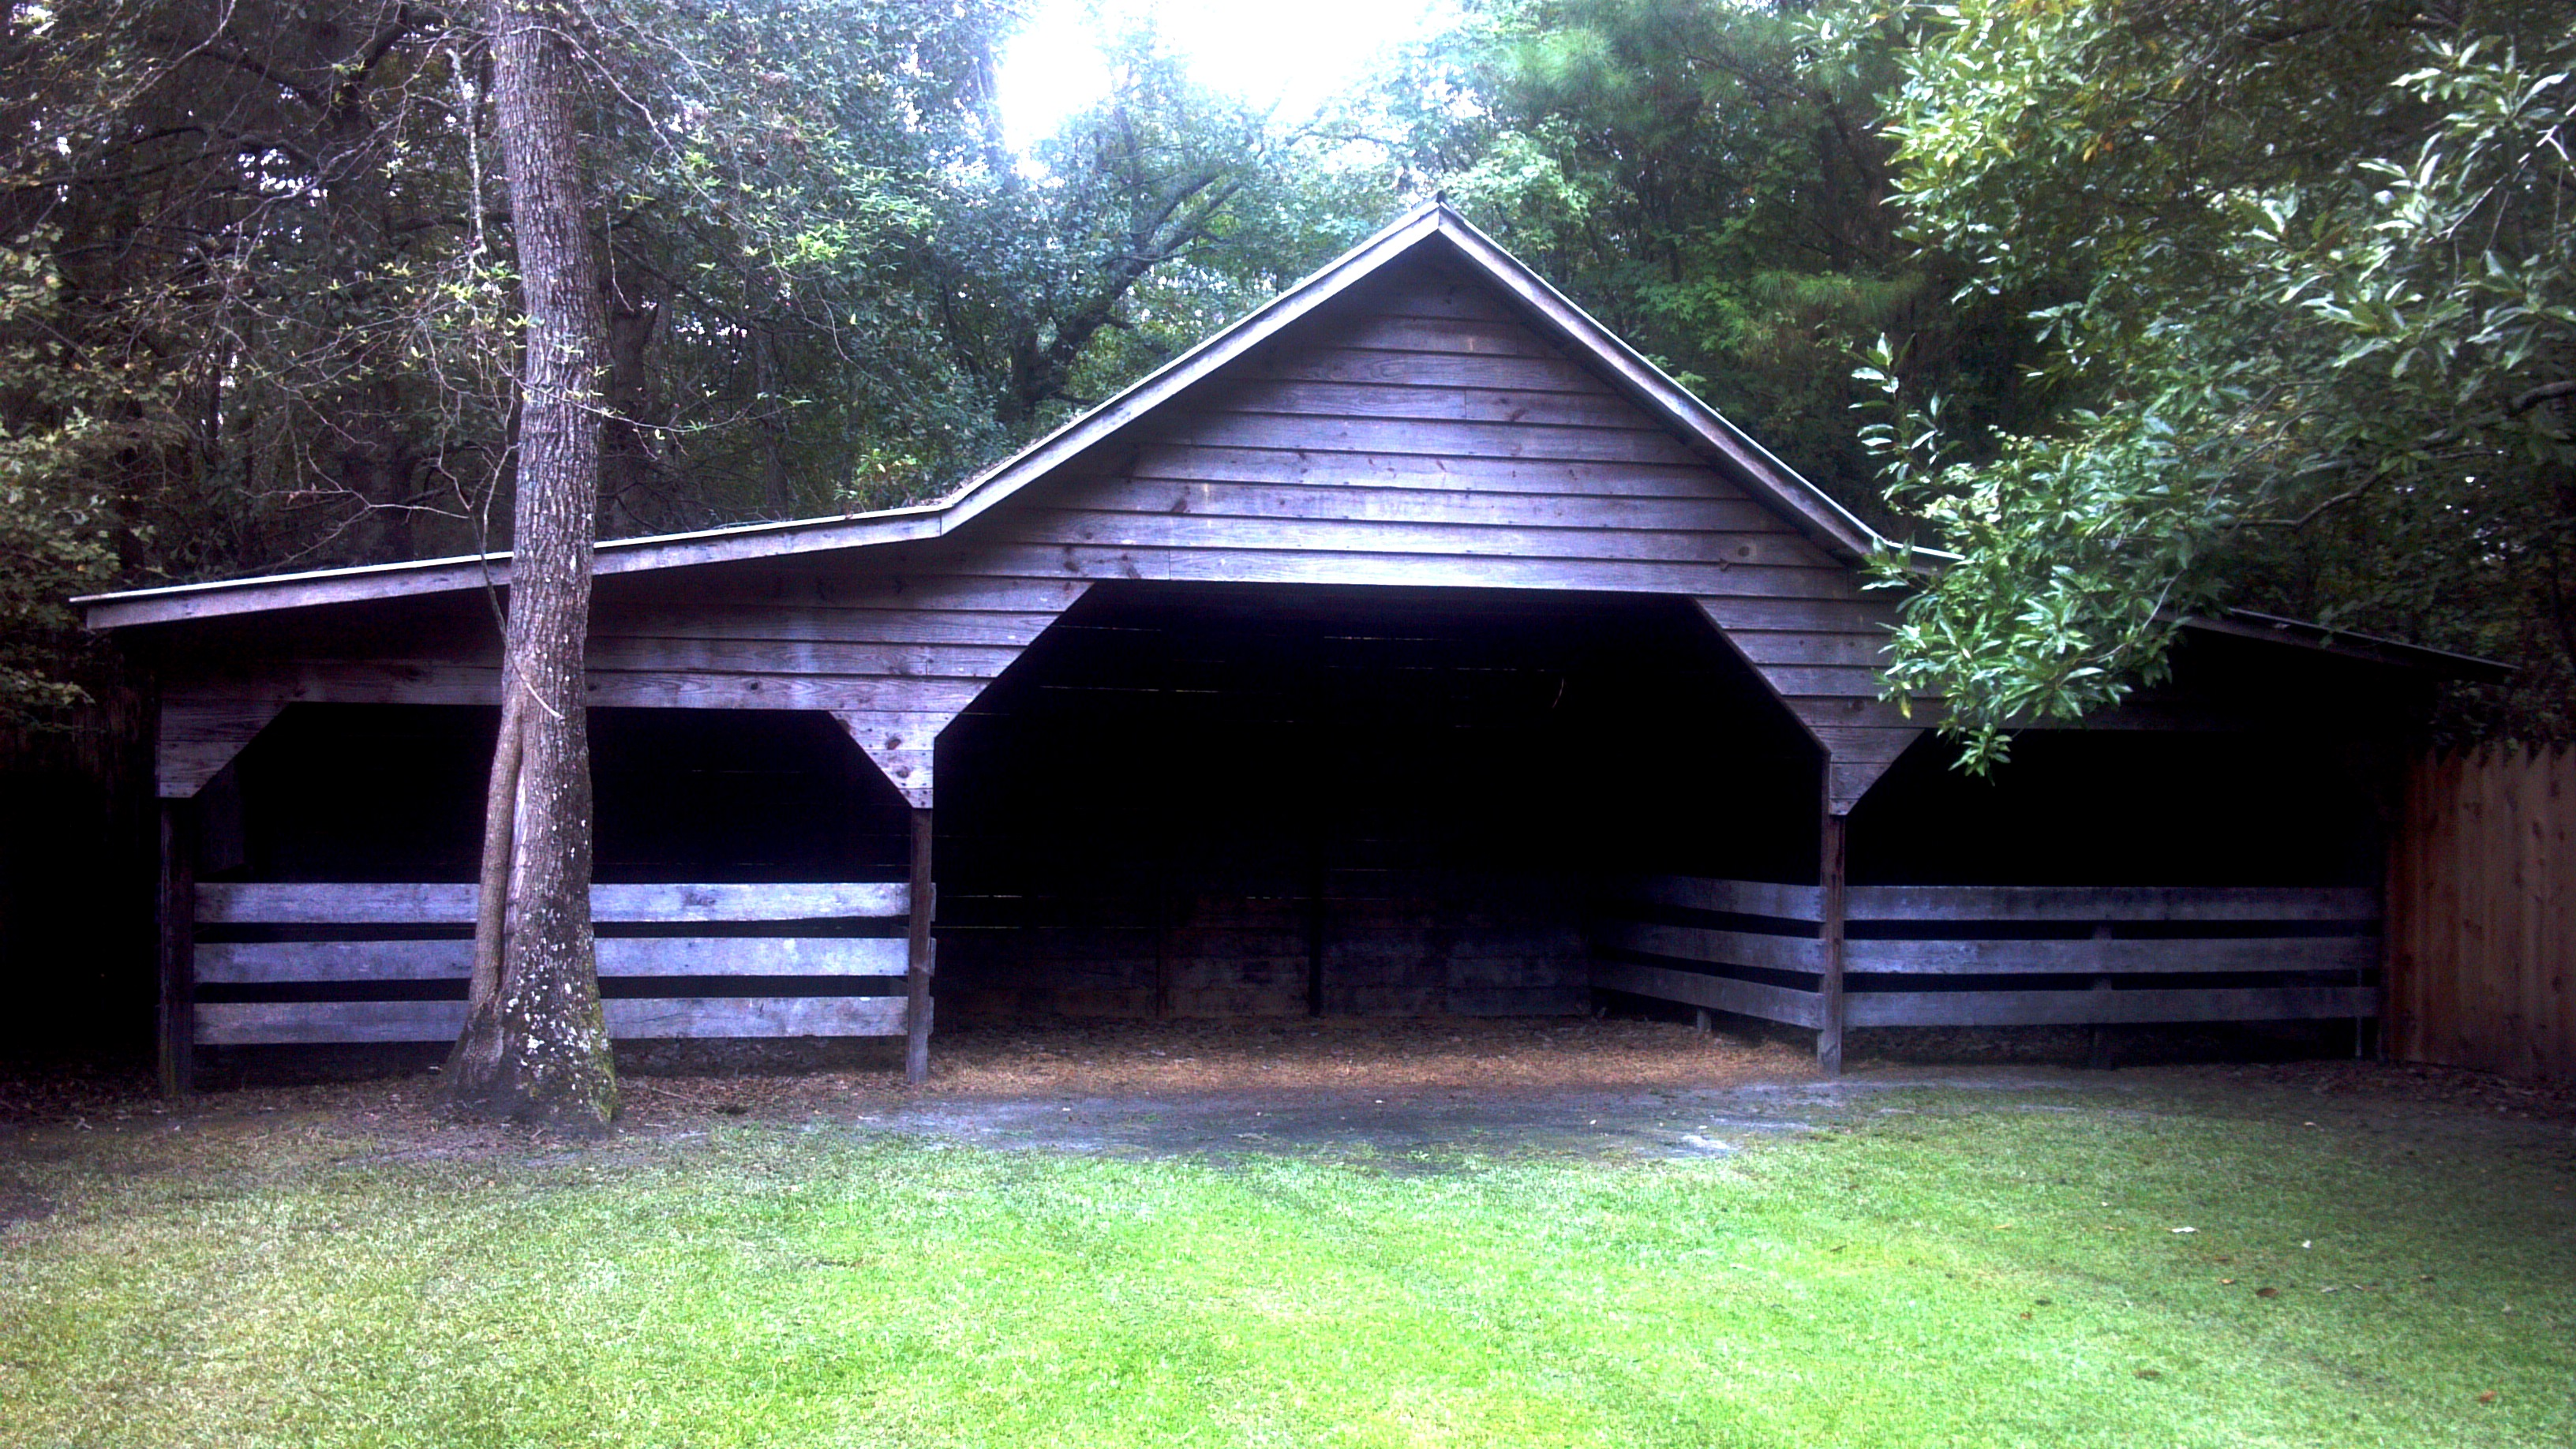 THE FEED BARN (PHOTO BY PASTOR DAVIS)